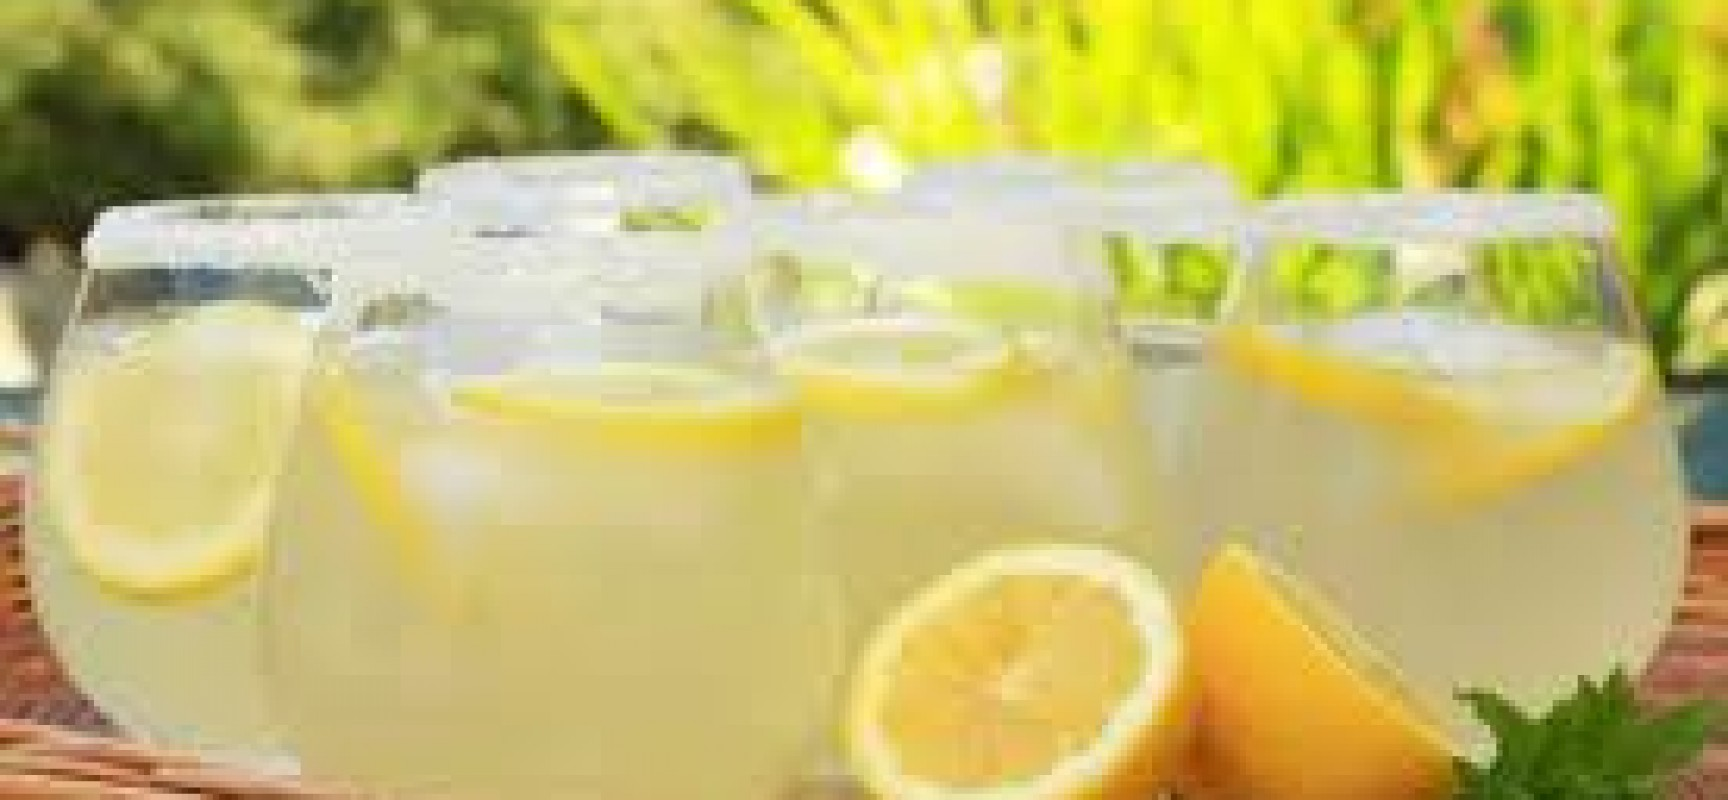 Different Lemonade Recipes